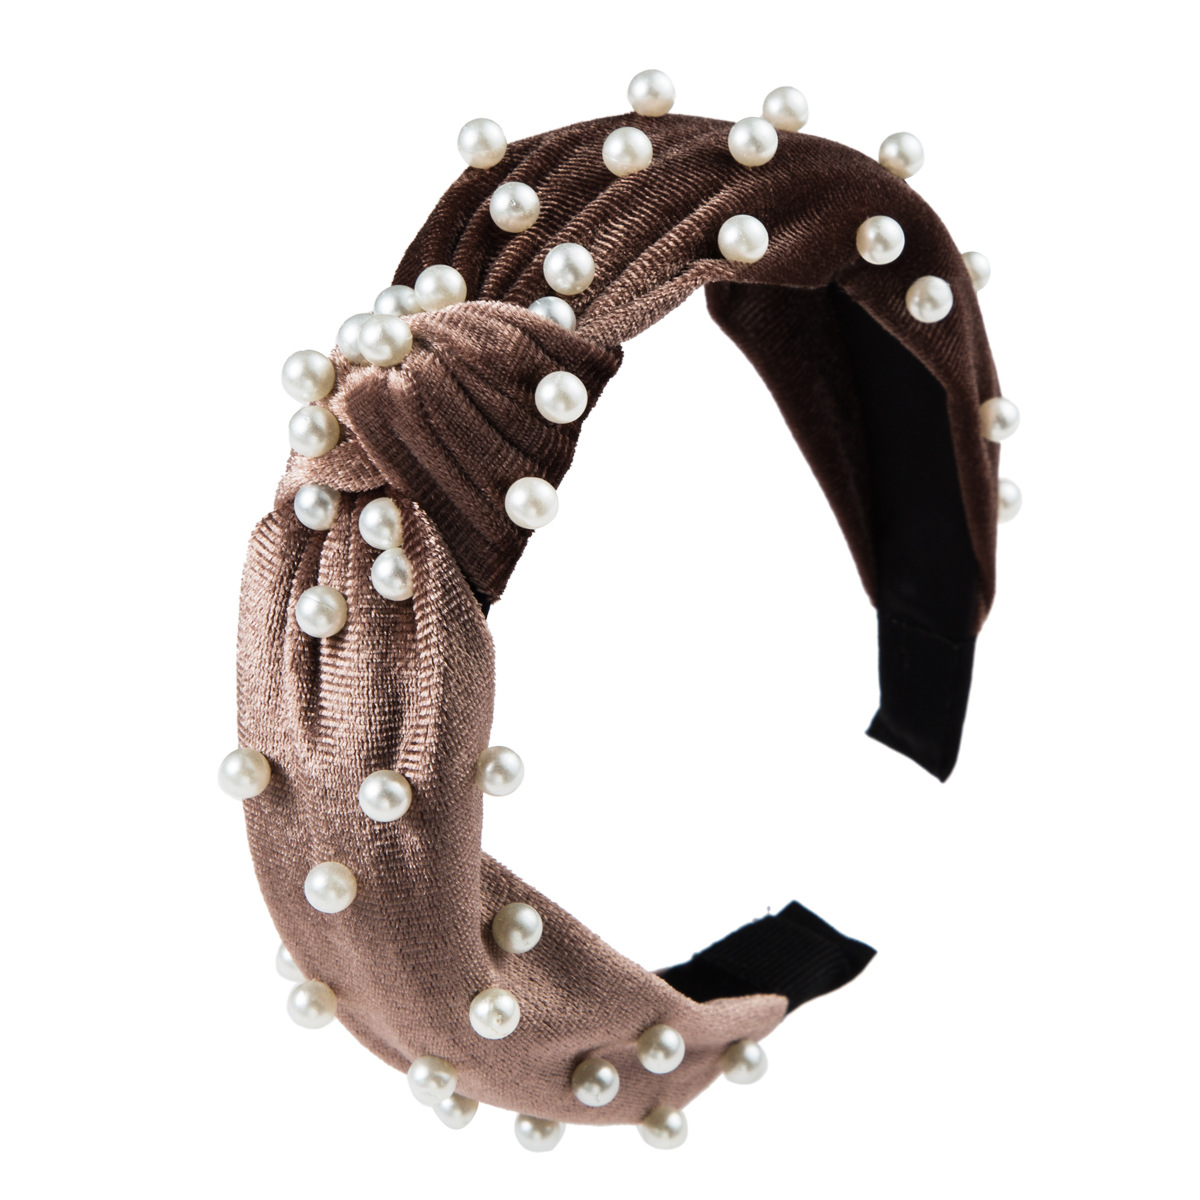 Fashion gold velvet pearl knotted wide-brimmed headband NHLN158396